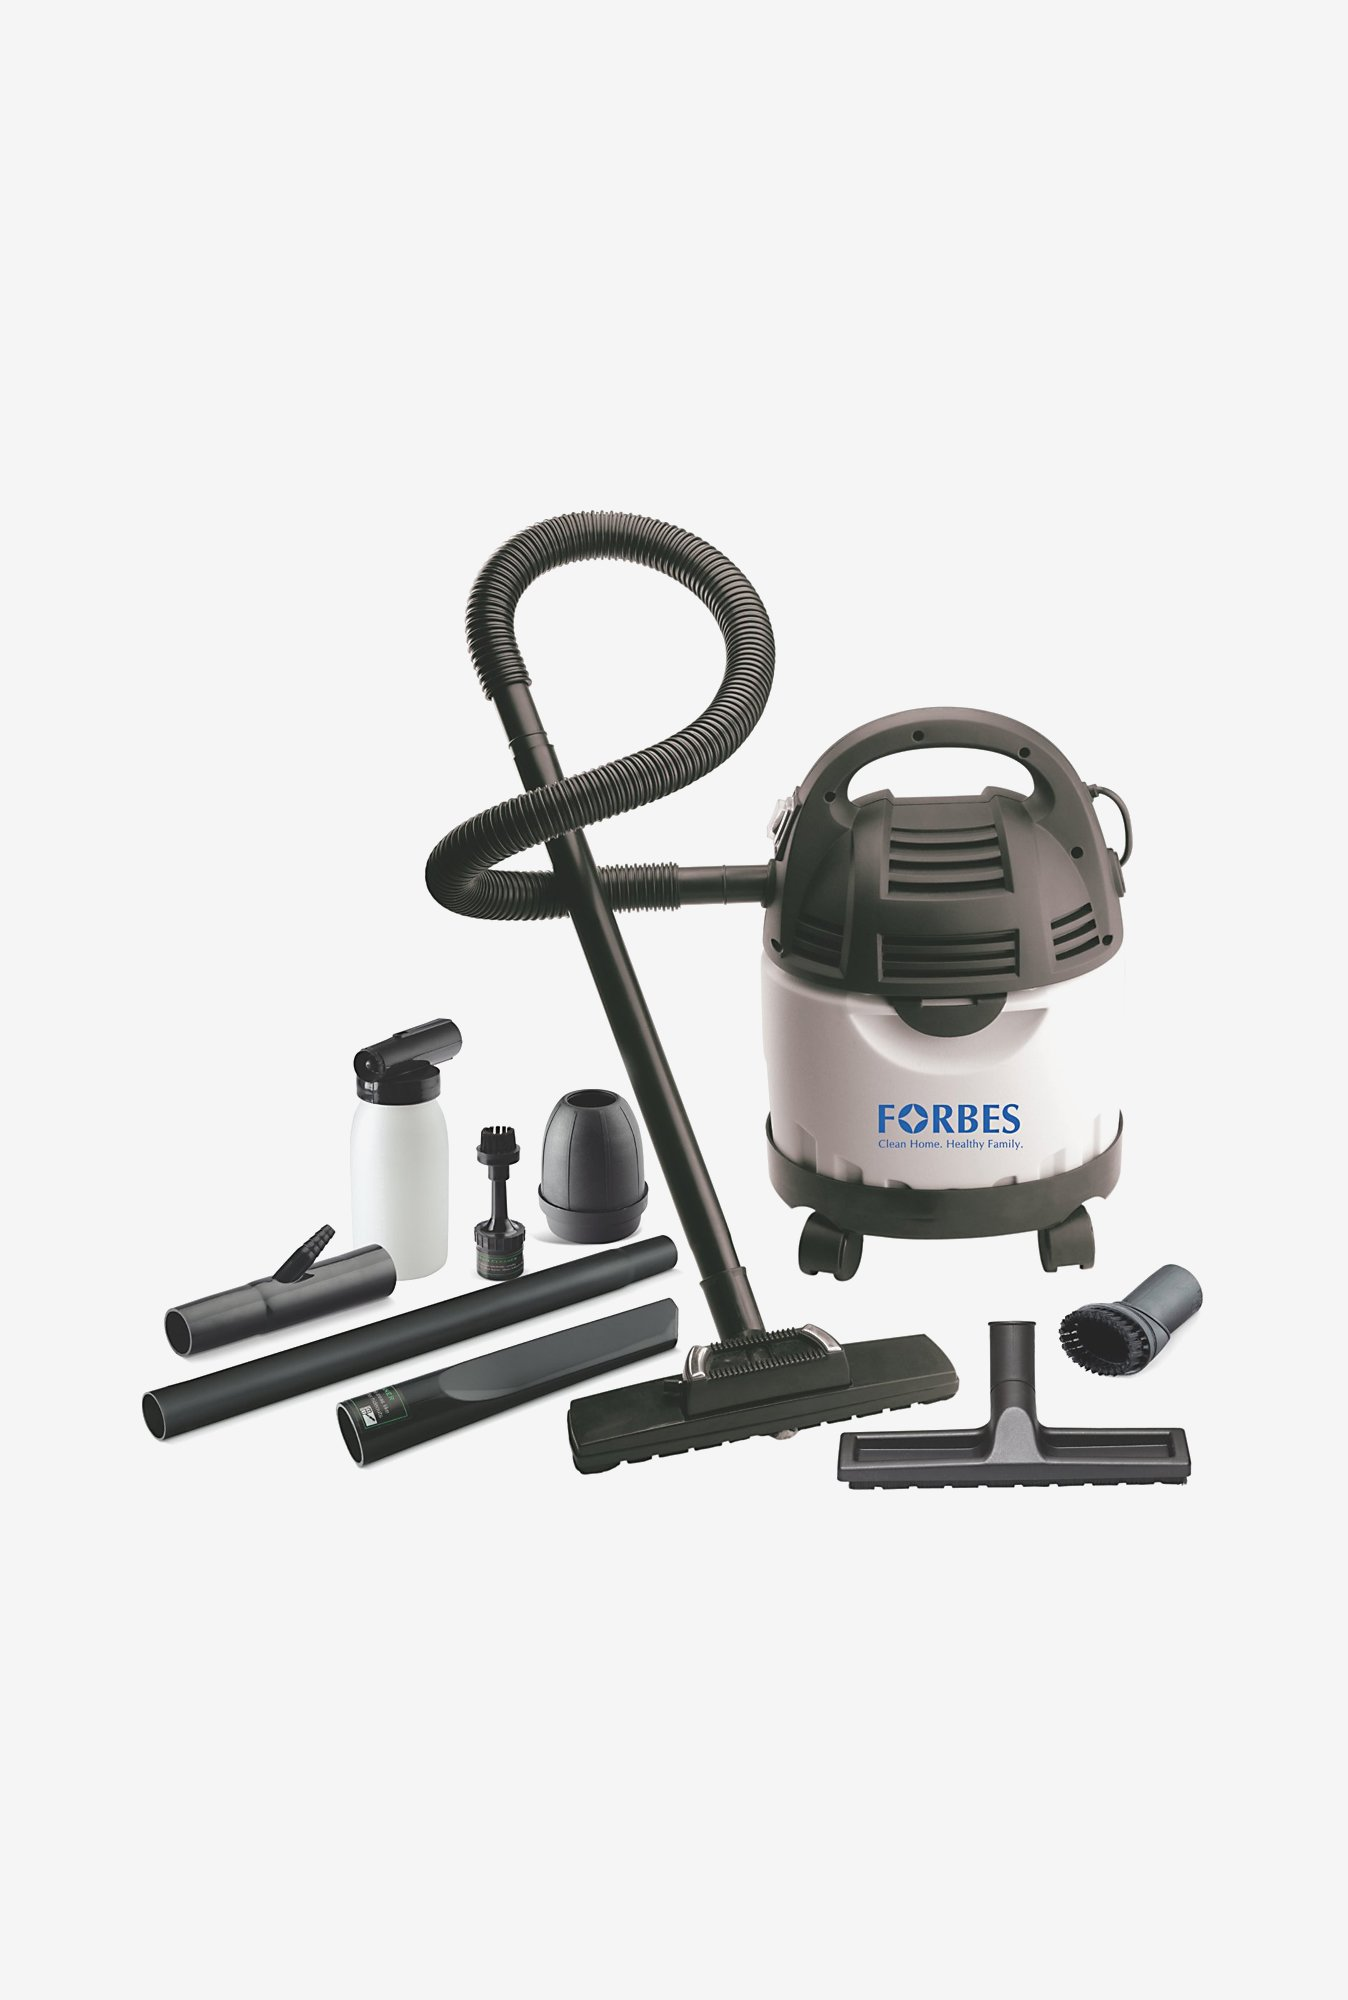 Eureka Forbes Trendy Wet And Dry Vacuum Cleaner Grey